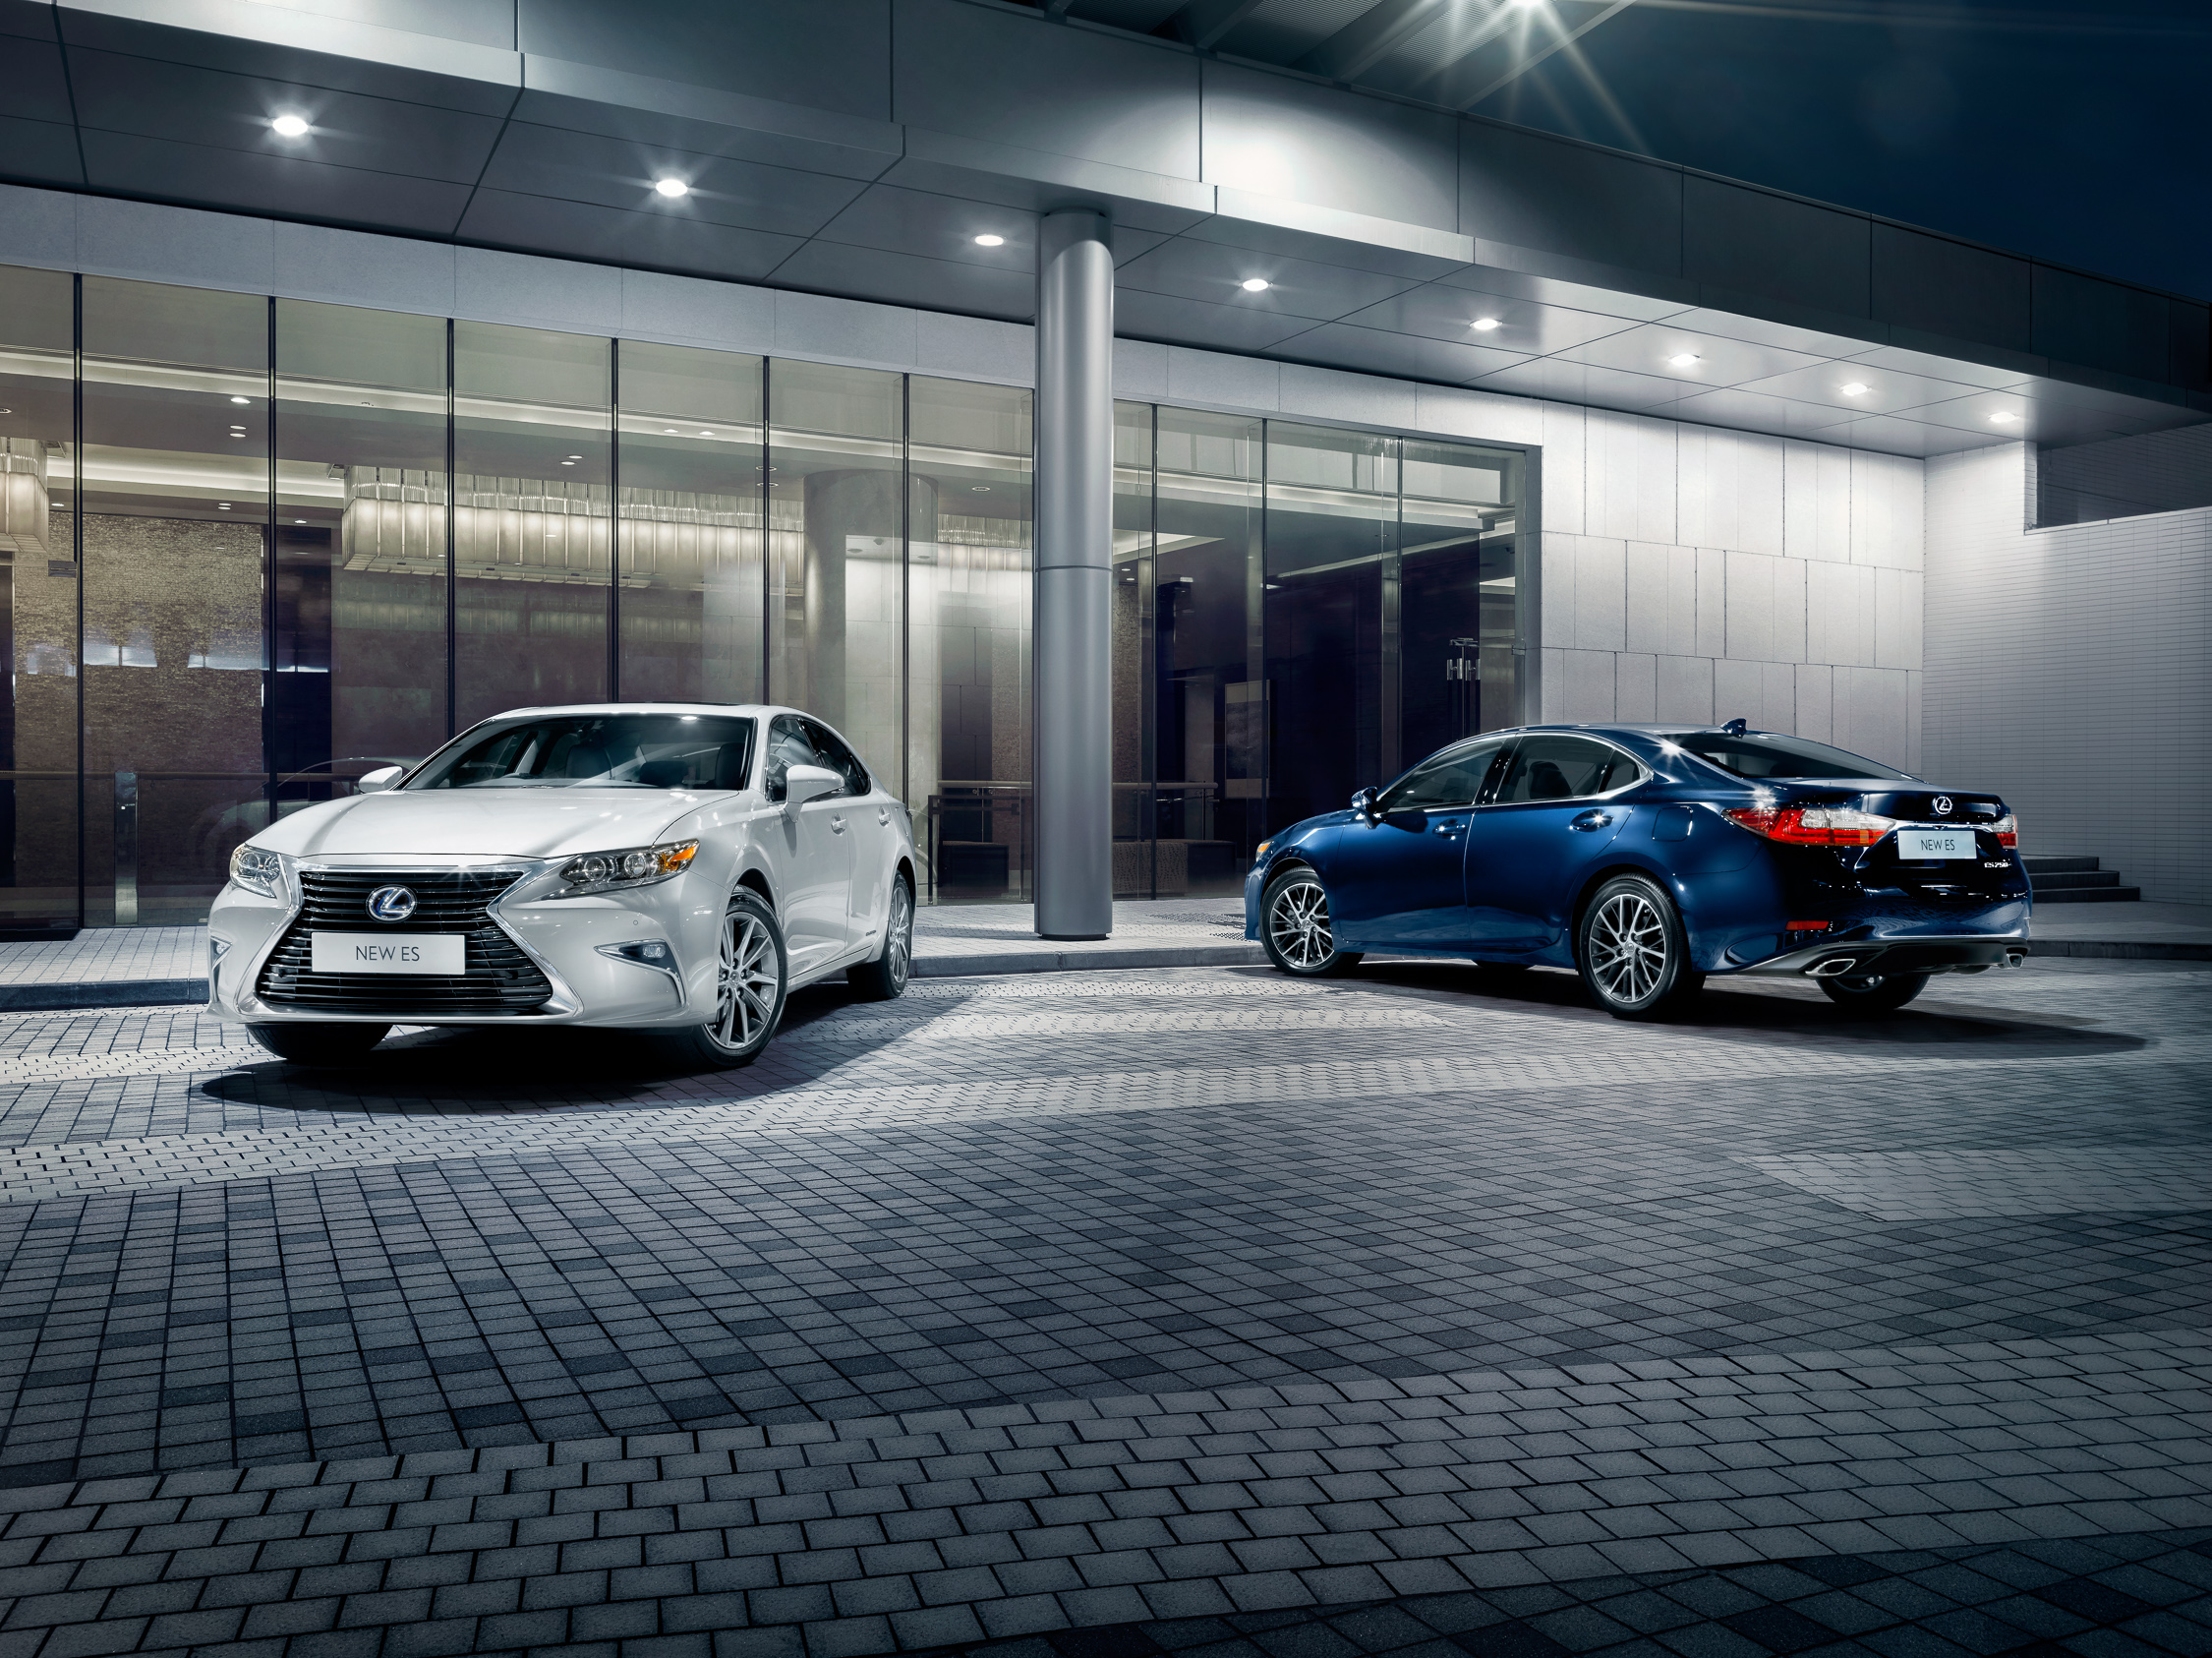 migs-foto-cgi-photography-automotive-car-cars-photographer-hong-kong-advertising-Lexus ES 2016_0021-HDR-1-3_MASTER_v06-2.25K